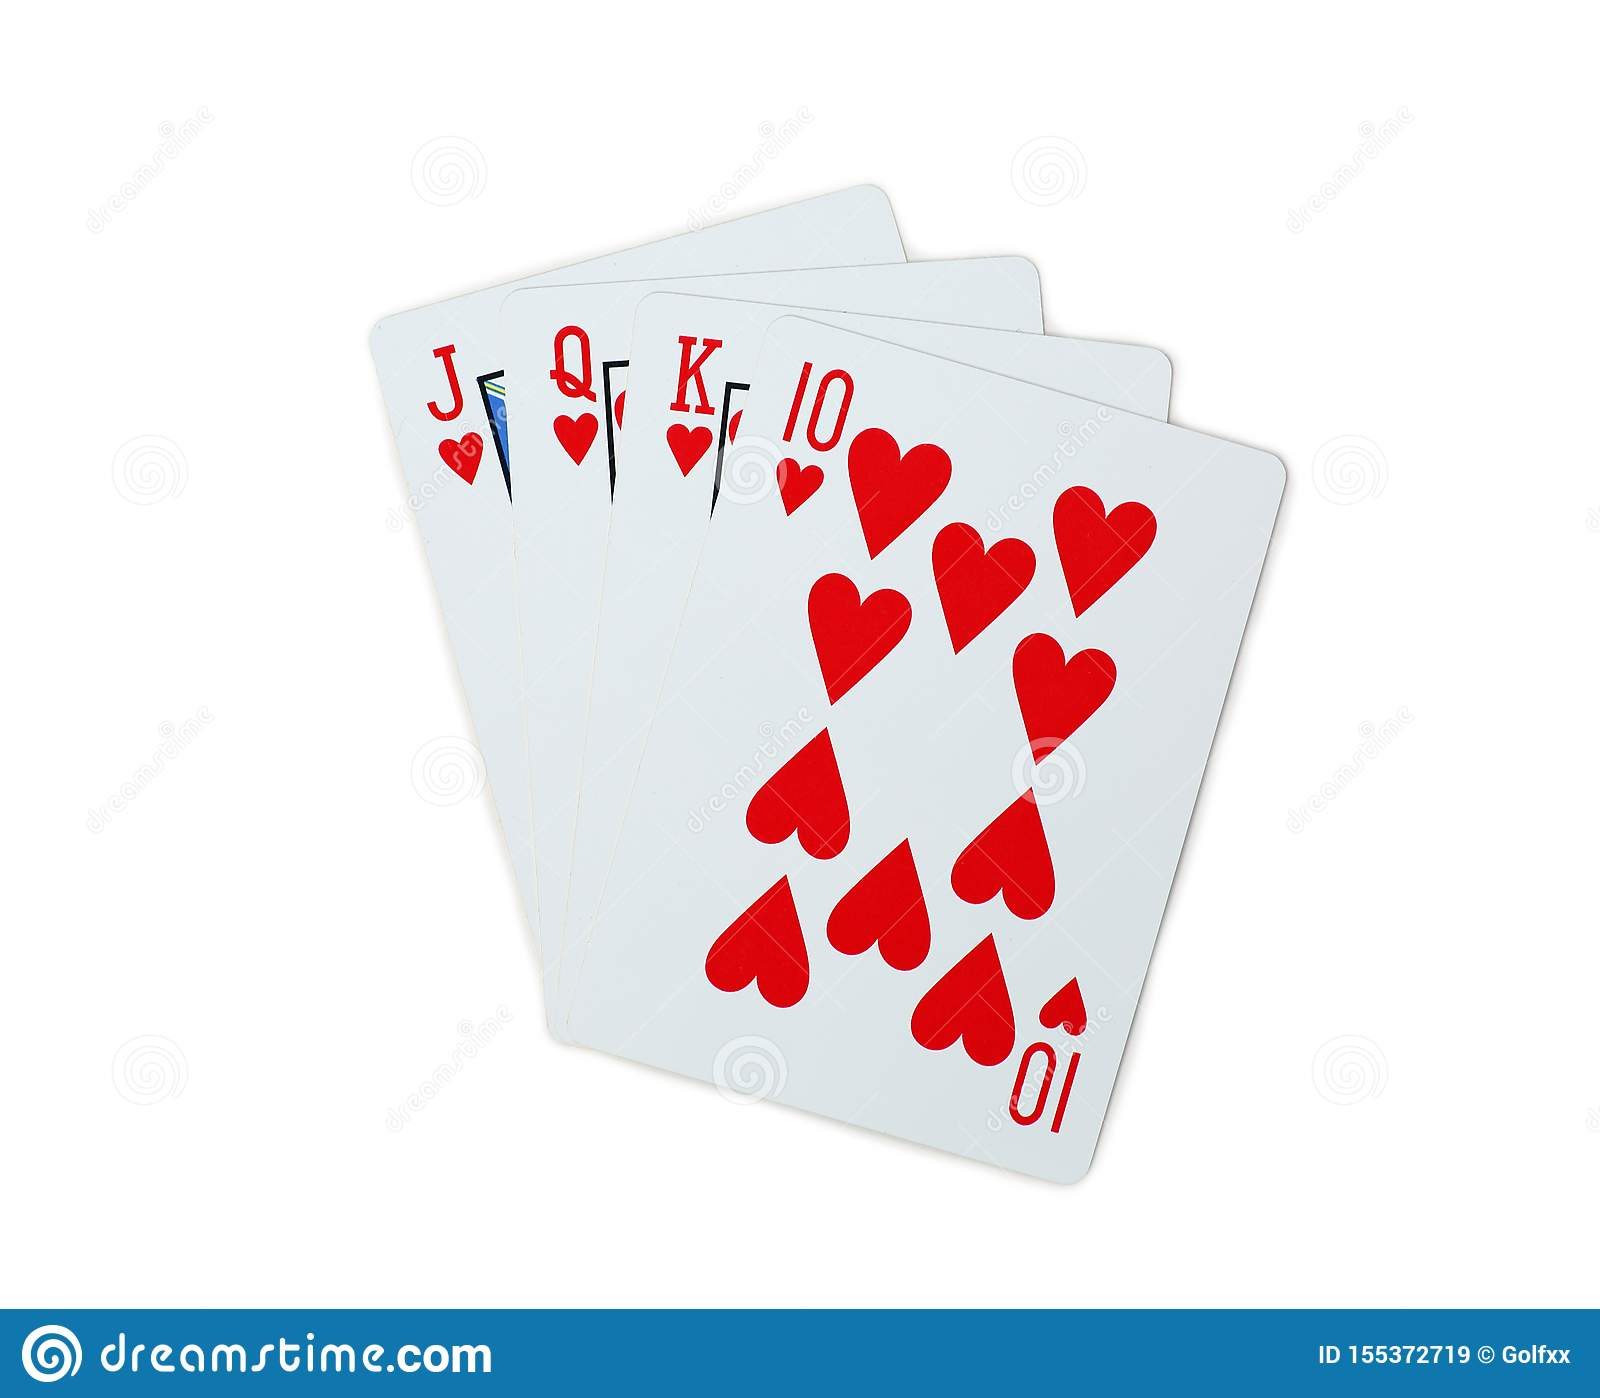 Poker Hearts Of J Q K 10 Playing Cards Isolated On White Background Stock Image Image Of King Chip 155372719